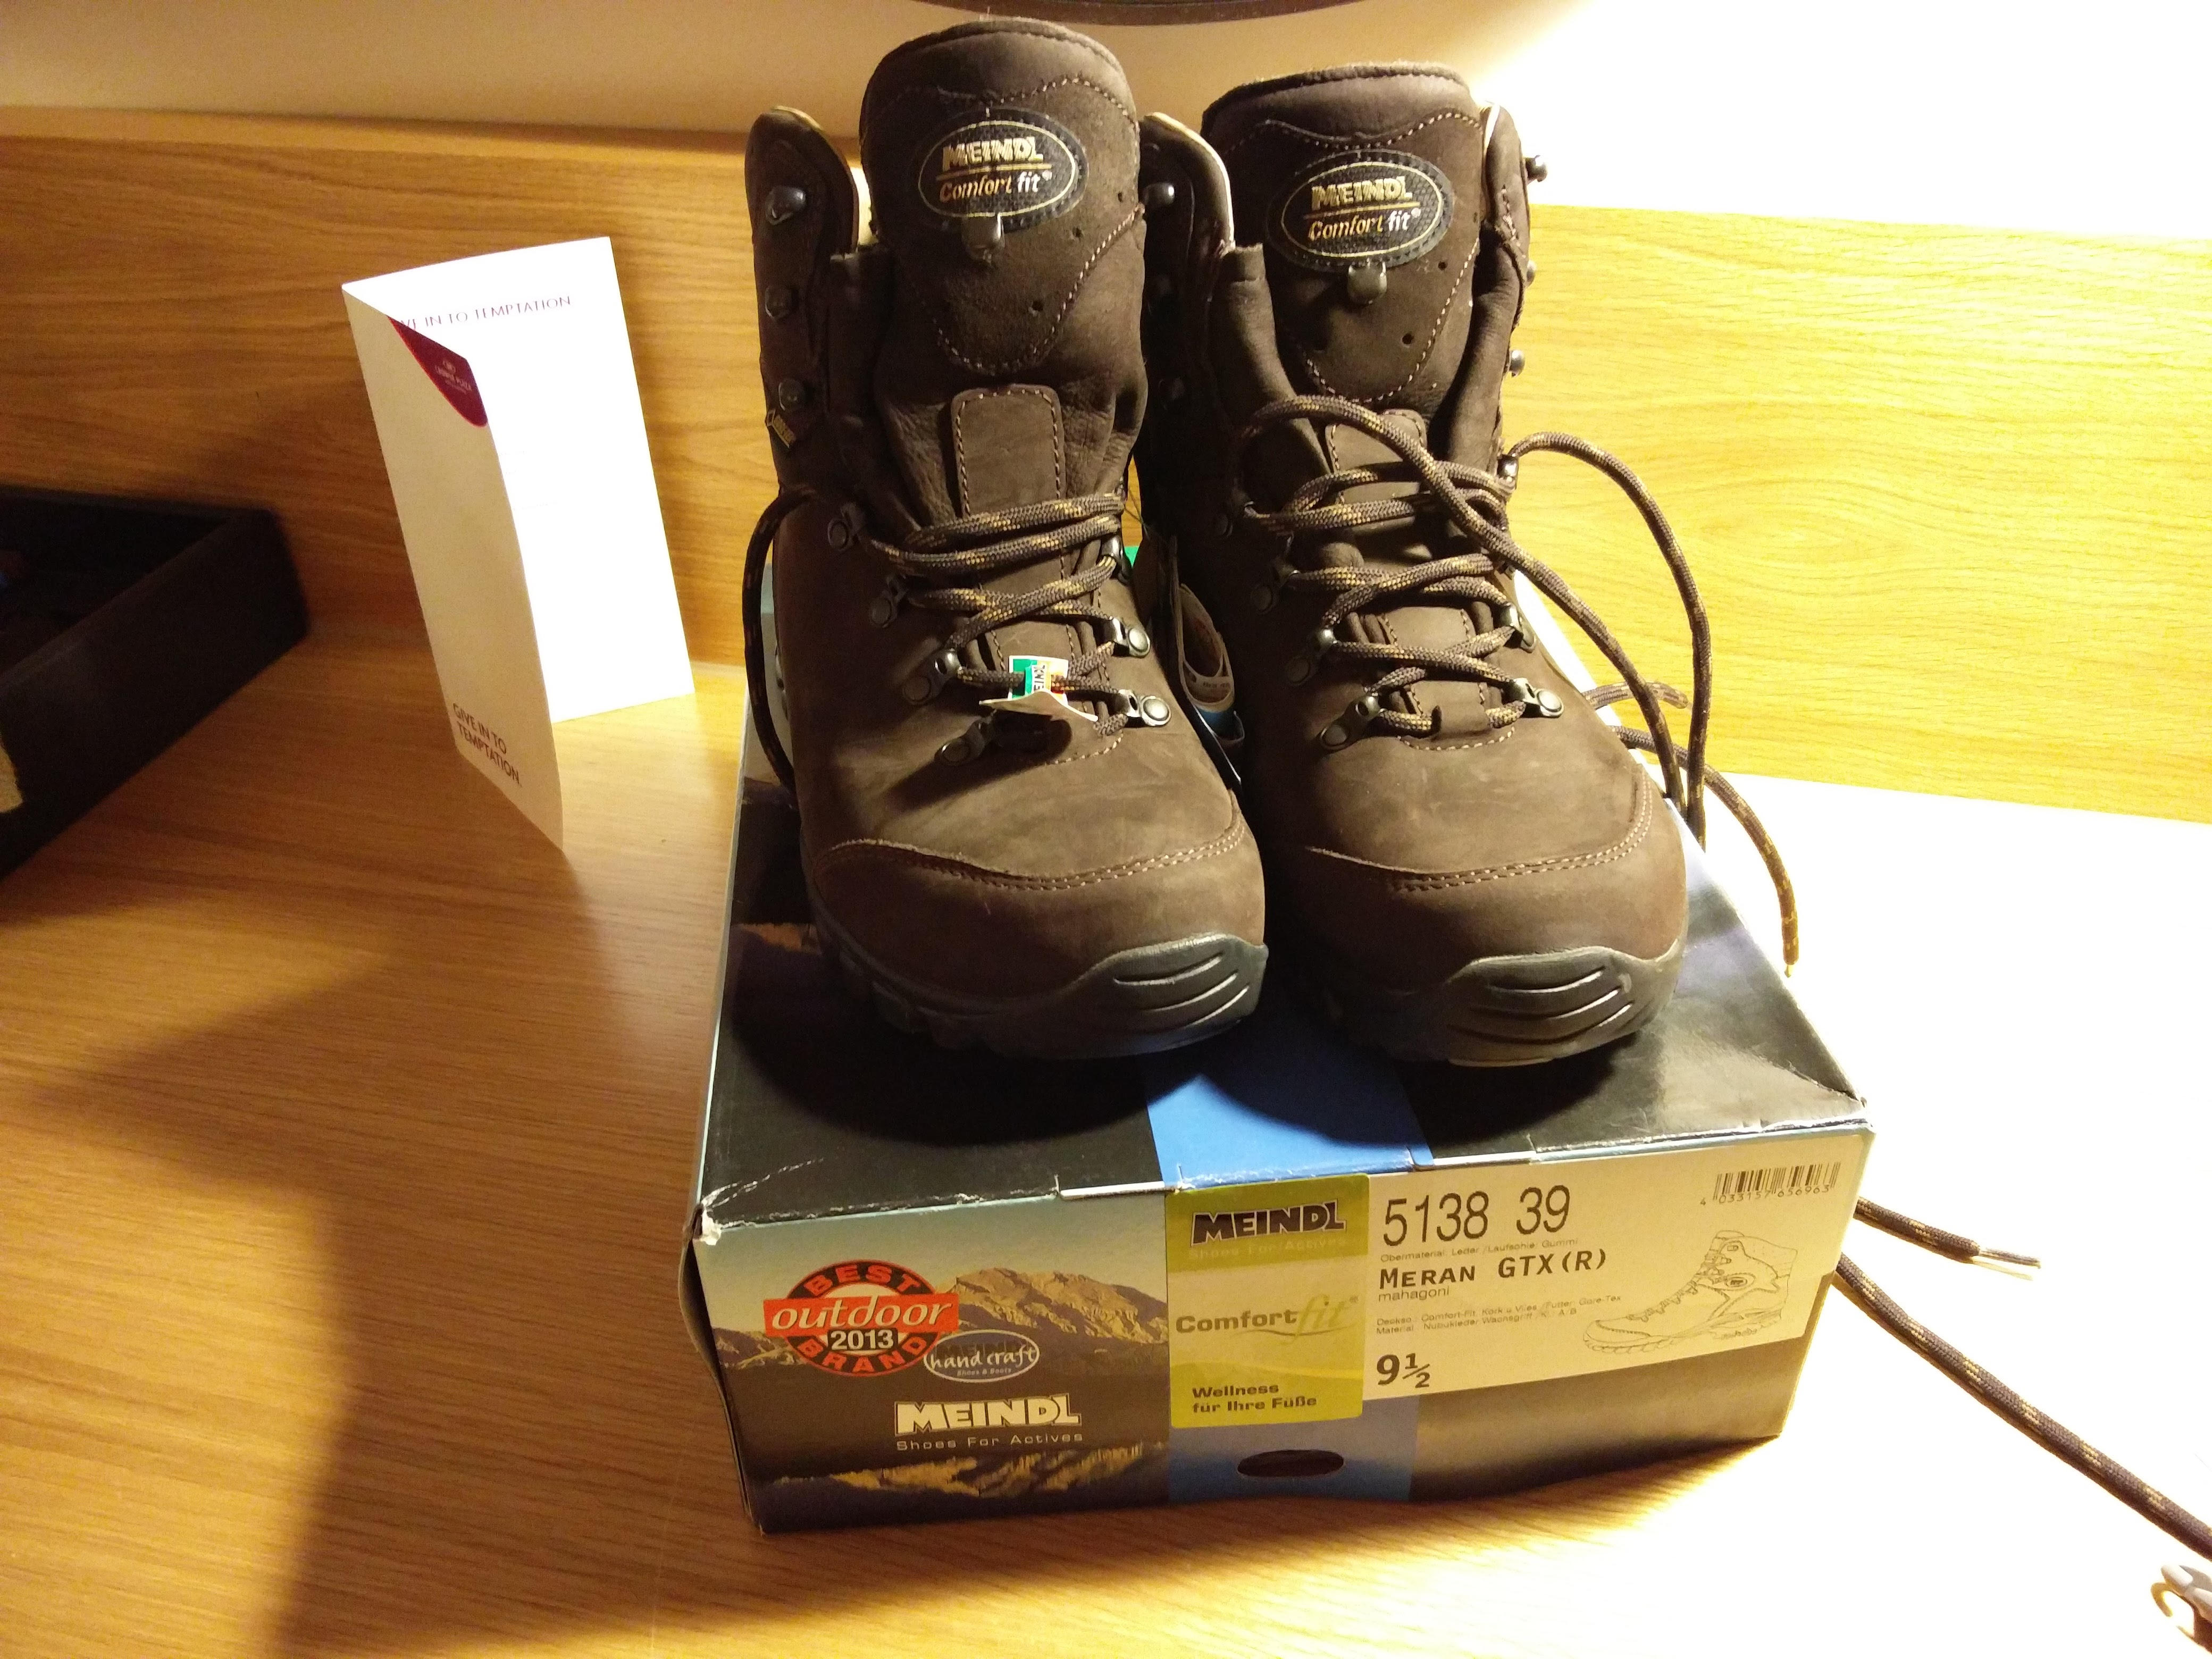 coast to coast walk preparation - my meindl boots